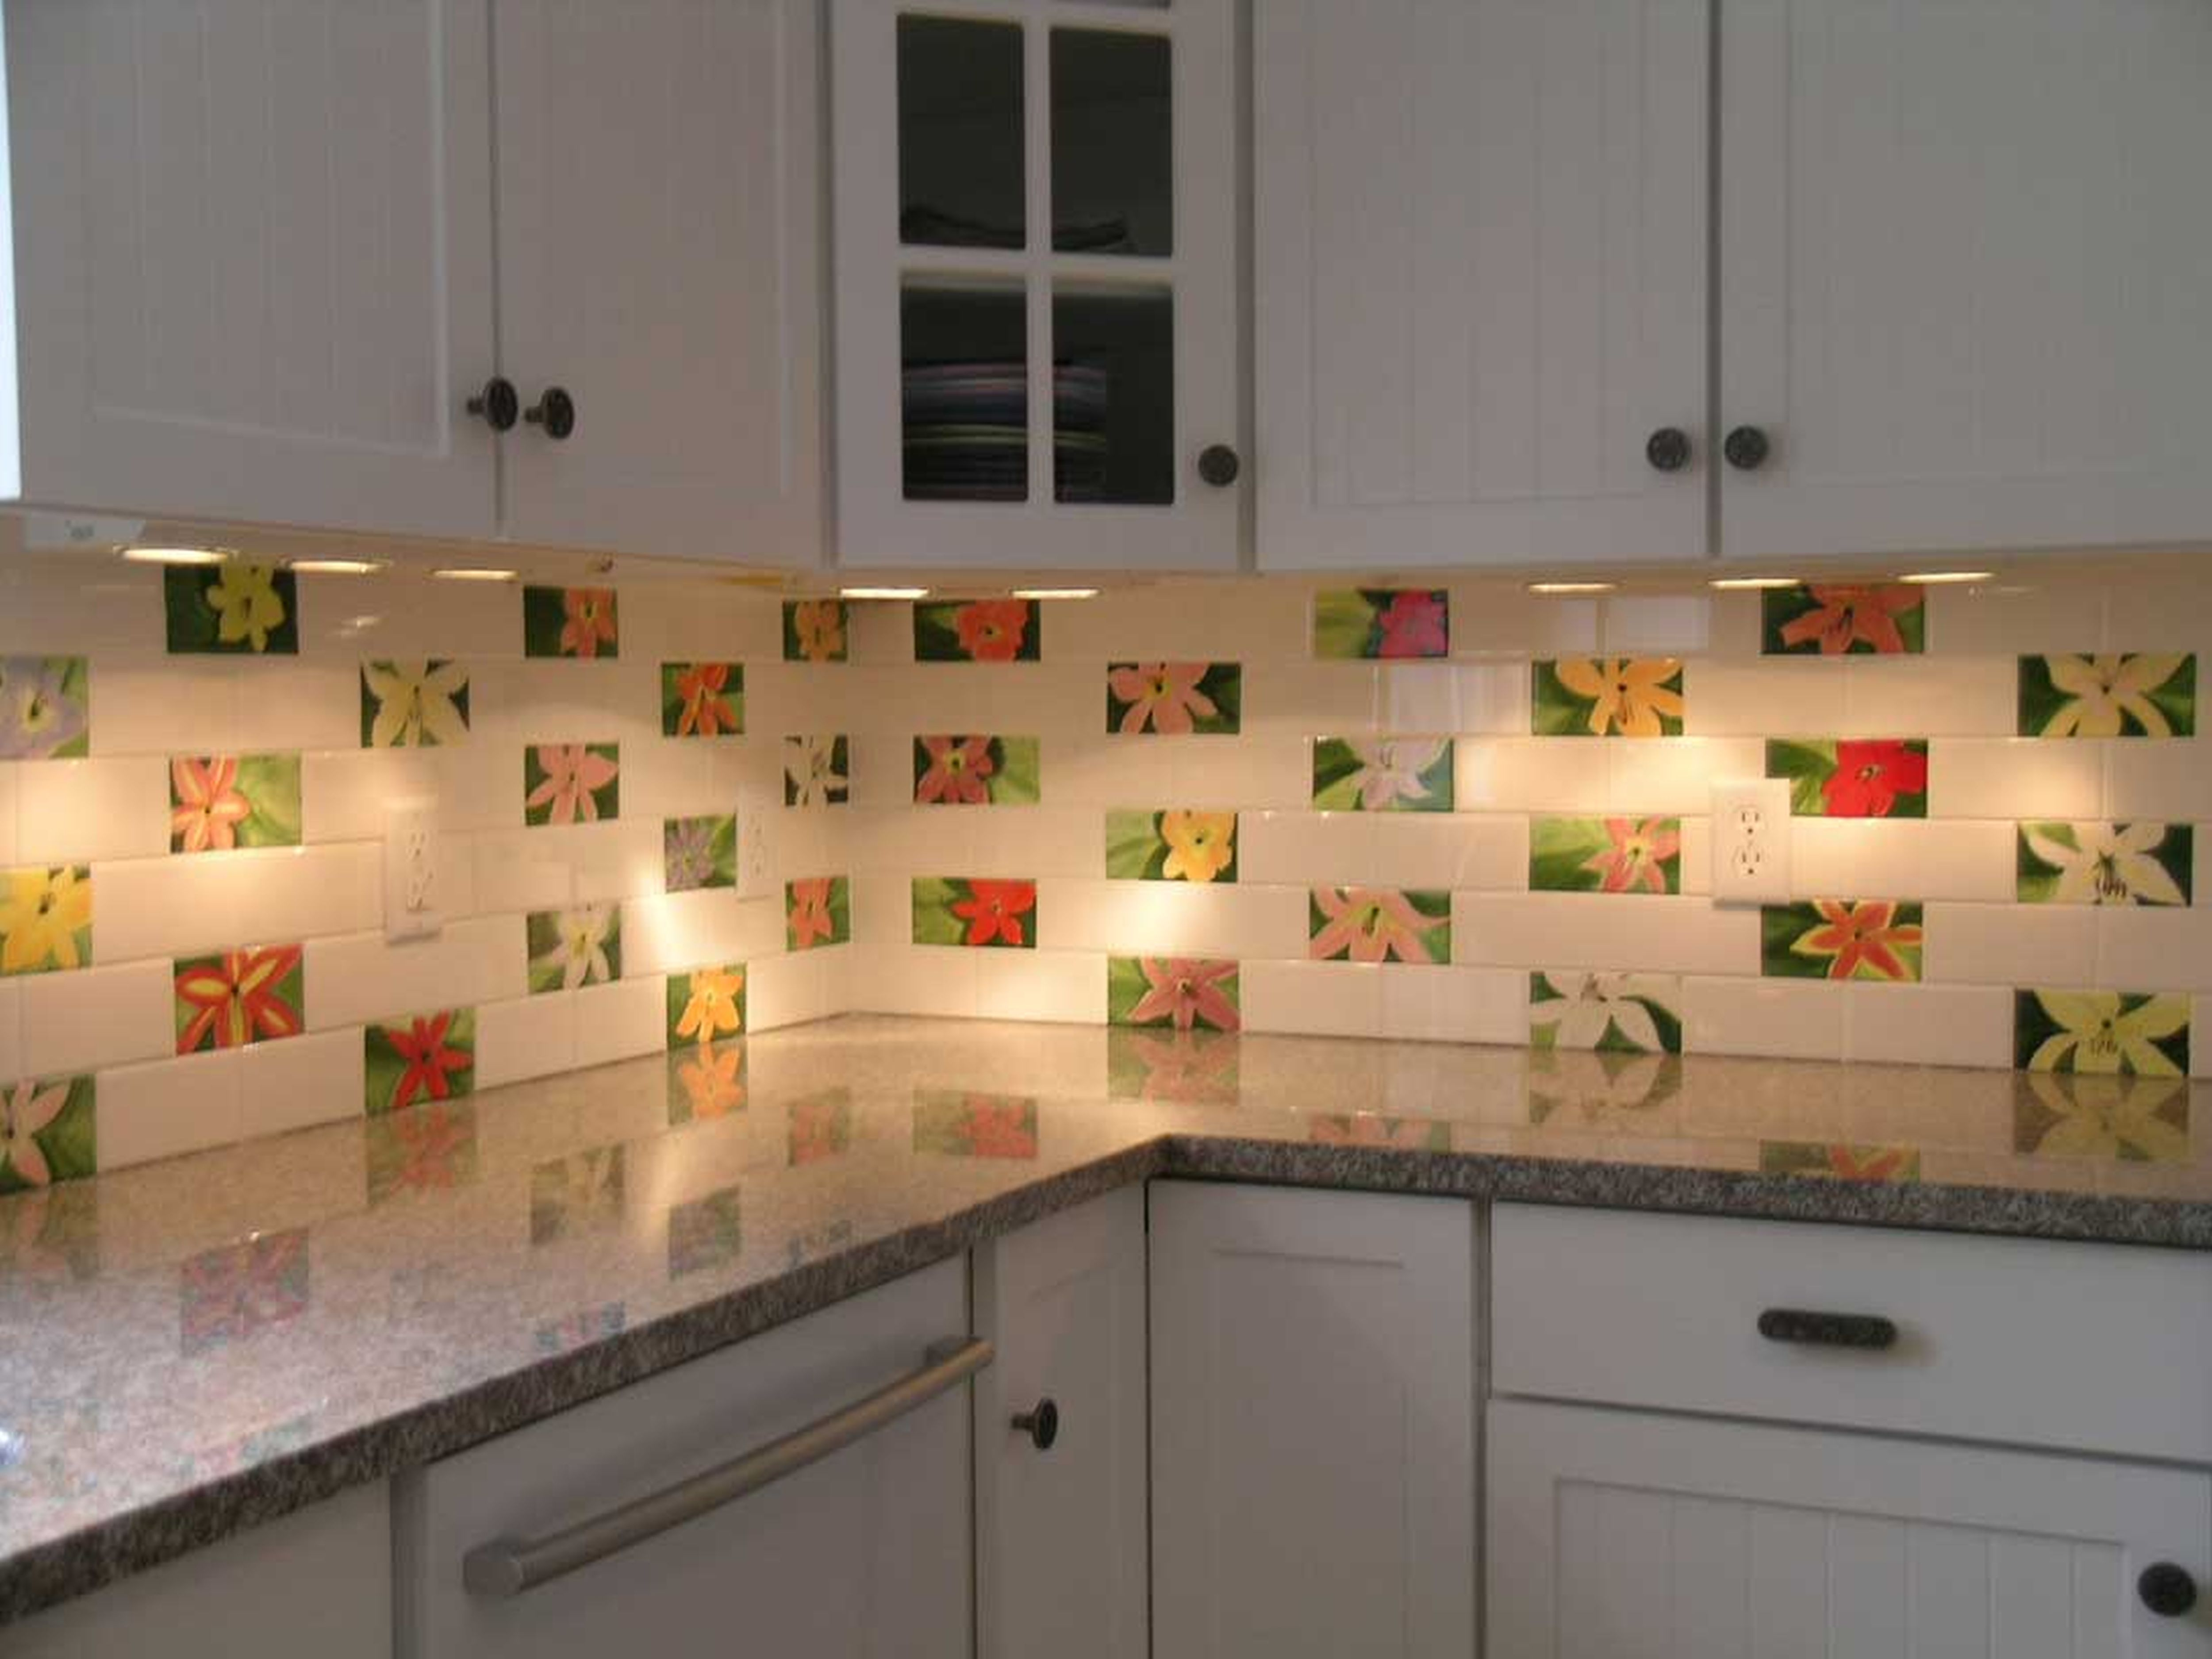 kitchen tiles design kitchen design tiles simple innovative tile patterns incredible decorations  wall ideas IJHSIOB